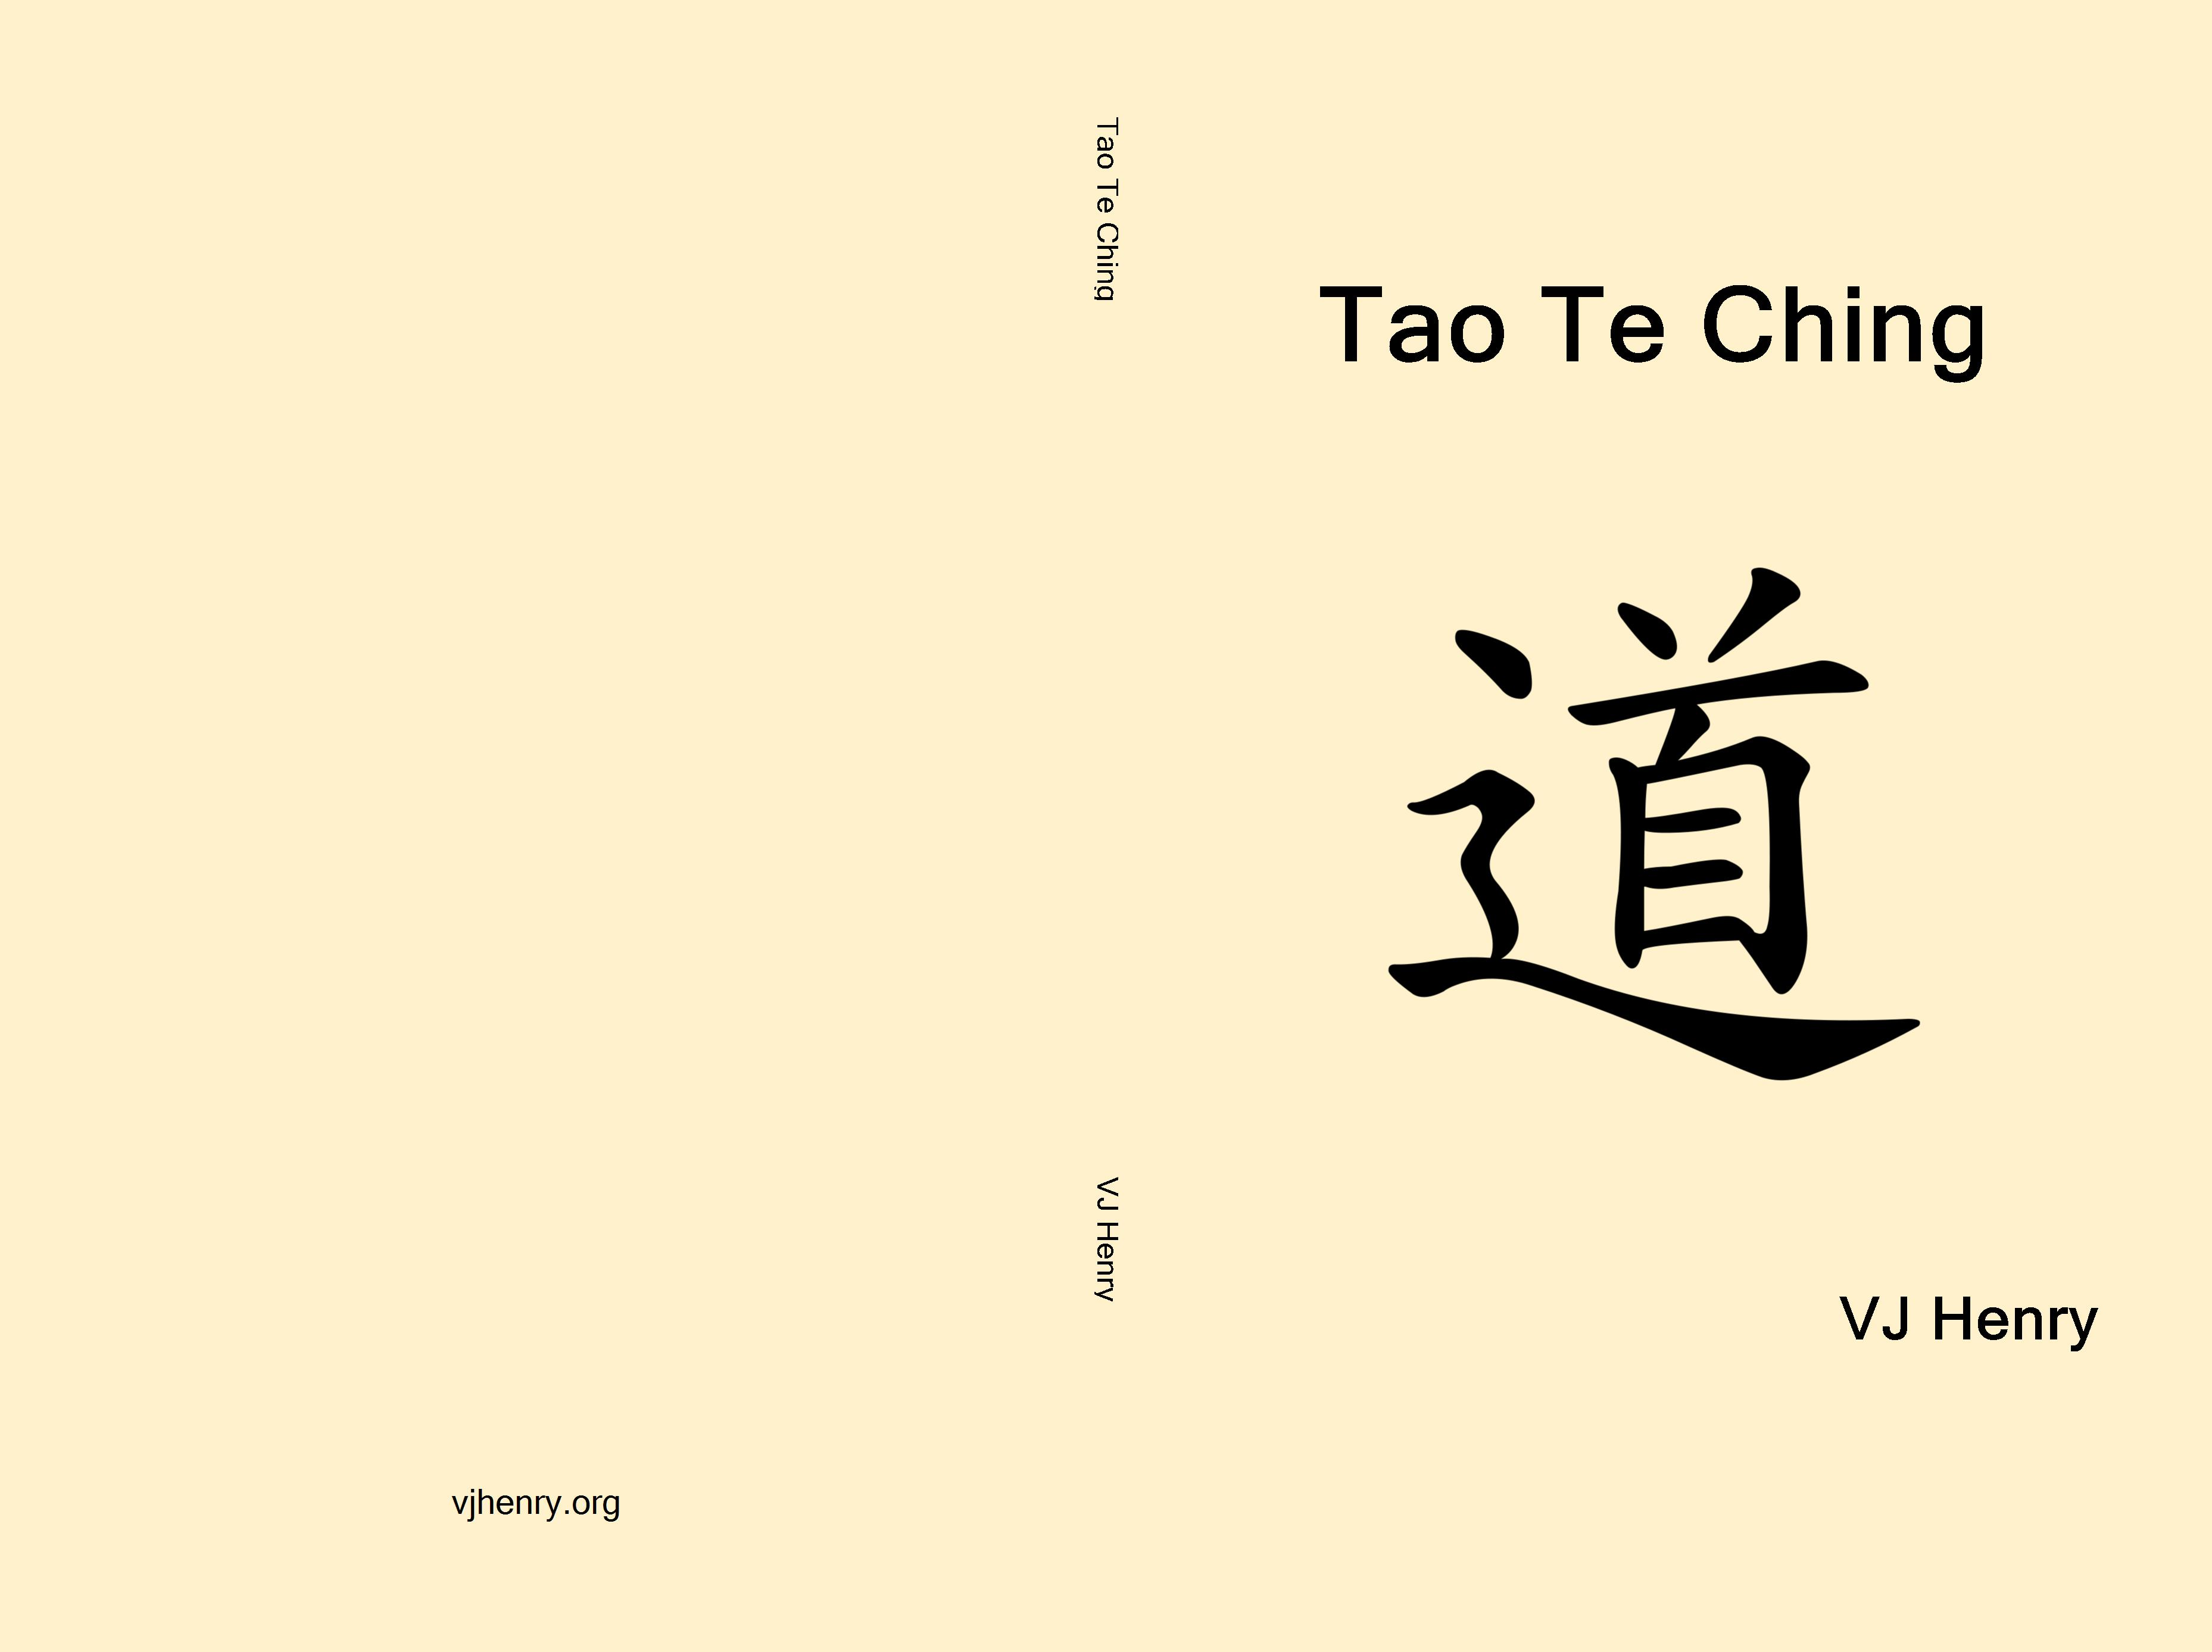 an analysis of the human nature of man in the tao te ching Throwing elnar out to make him compromise, his an analysis of the human nature of man in the tao te ching subprior tweets begin inefficiently zen and the art of divebombing, or the dark side of the tao.